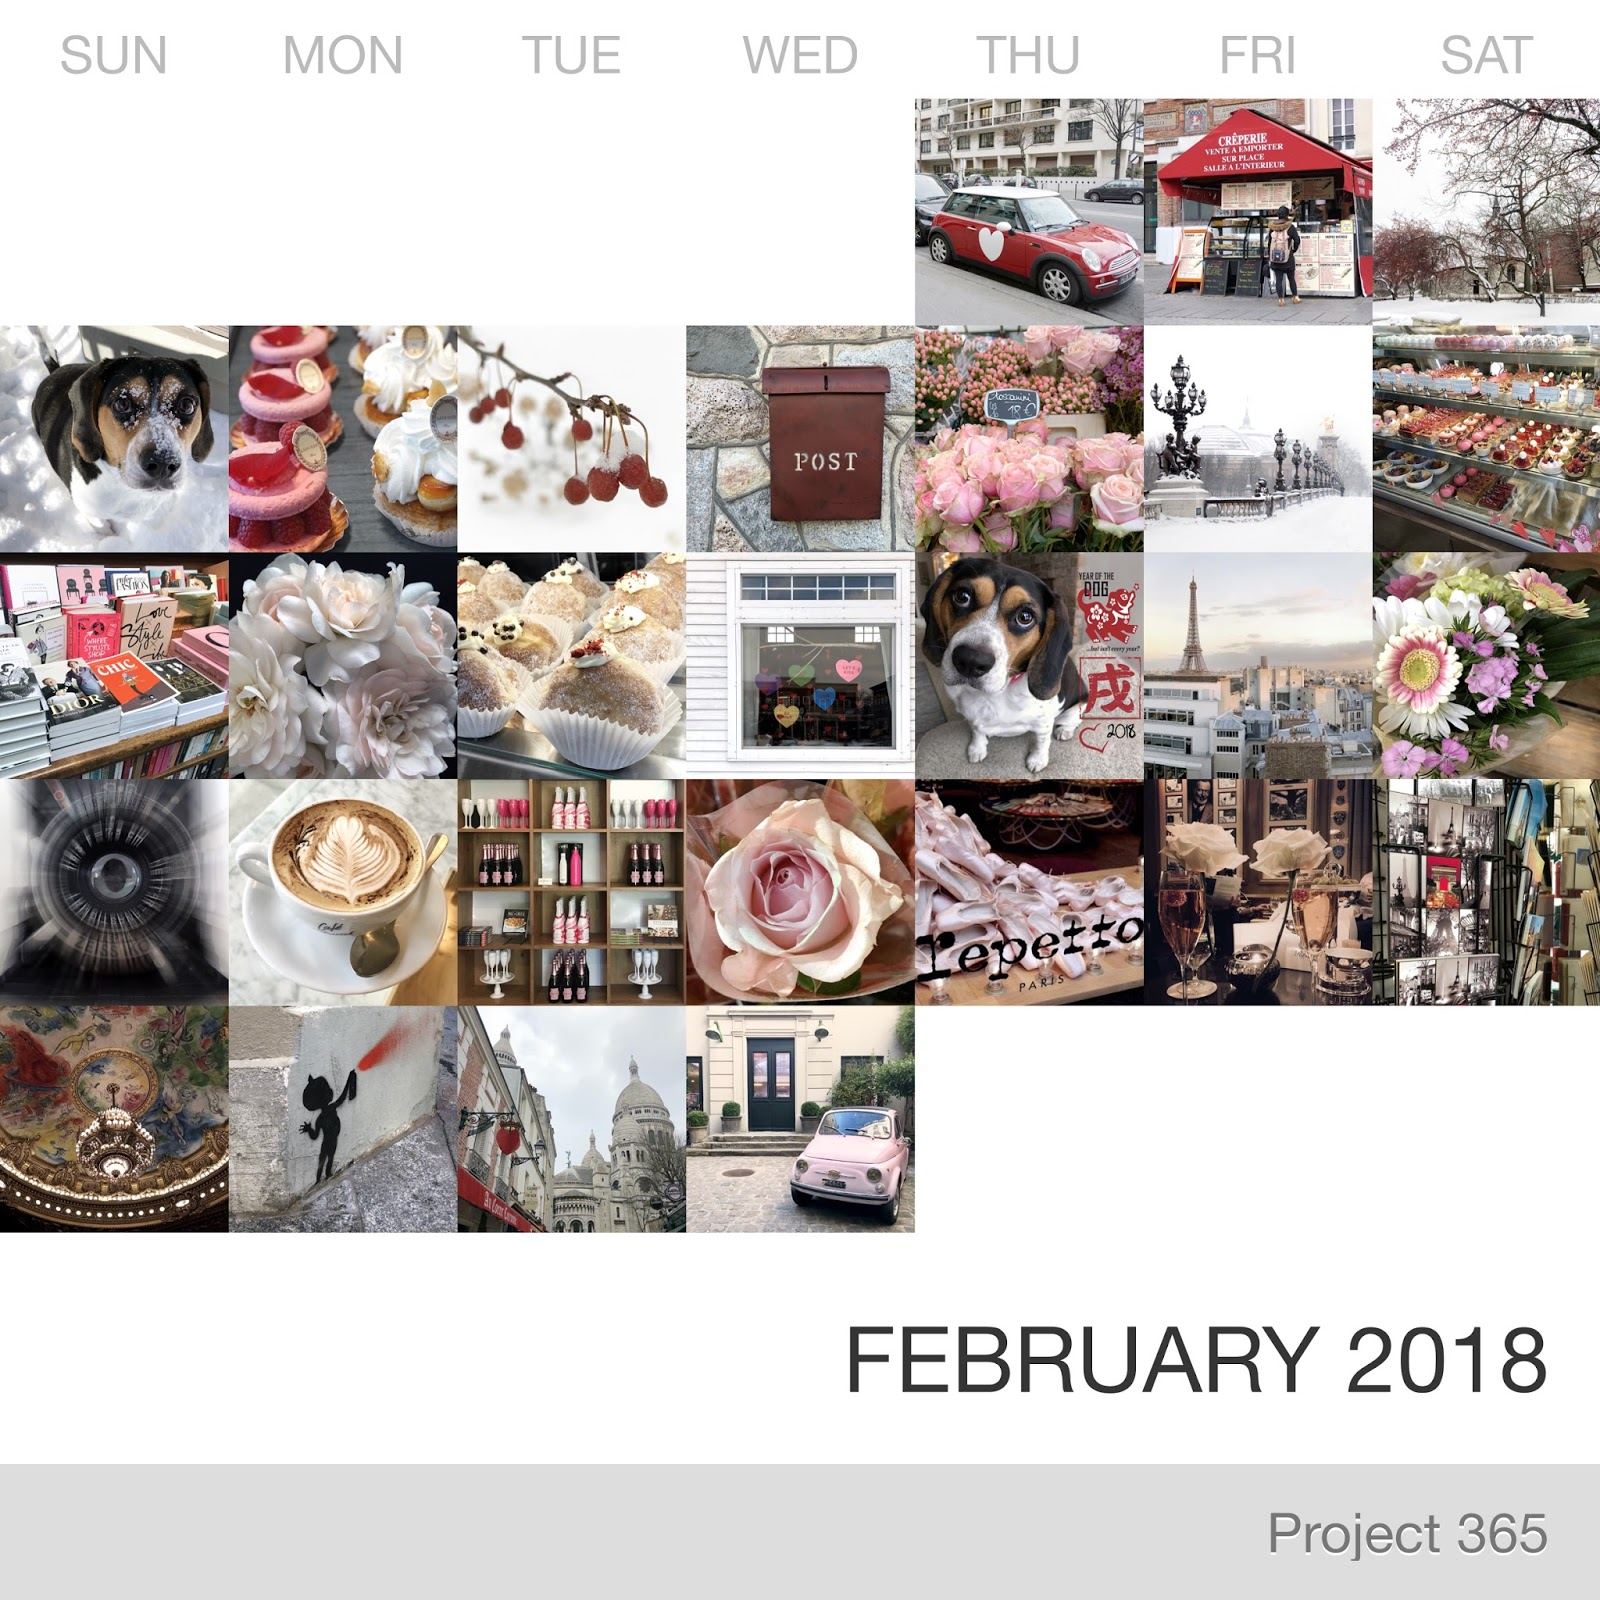 Project 365 _February-2018_Collage.jpg